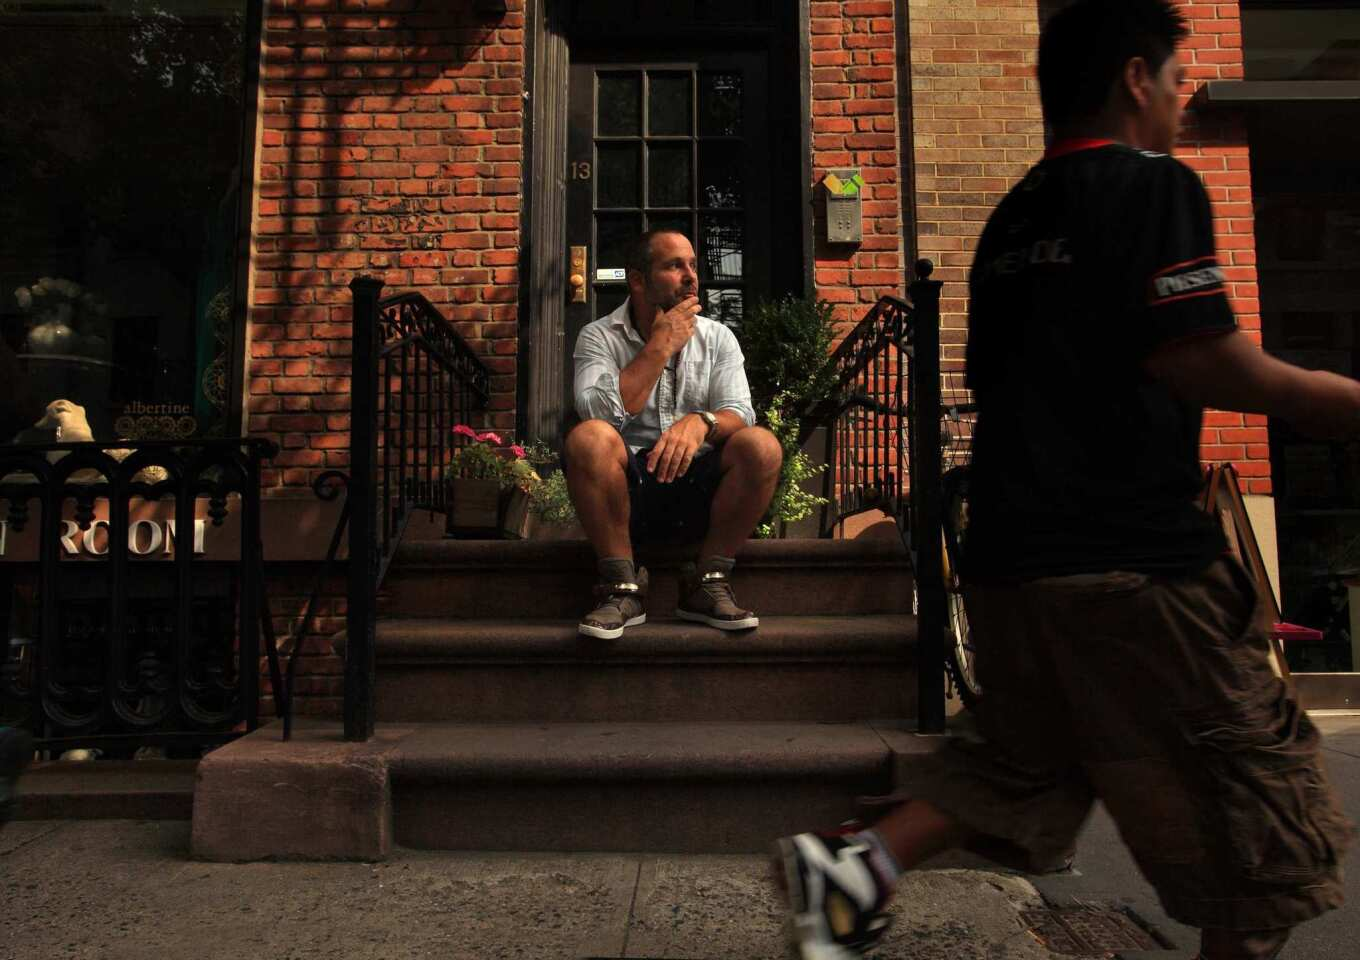 Scott Elyanow, who lives in a 275-square-foot apartment in New York's West Village, spends a lot of time on the front stoop people-watching.